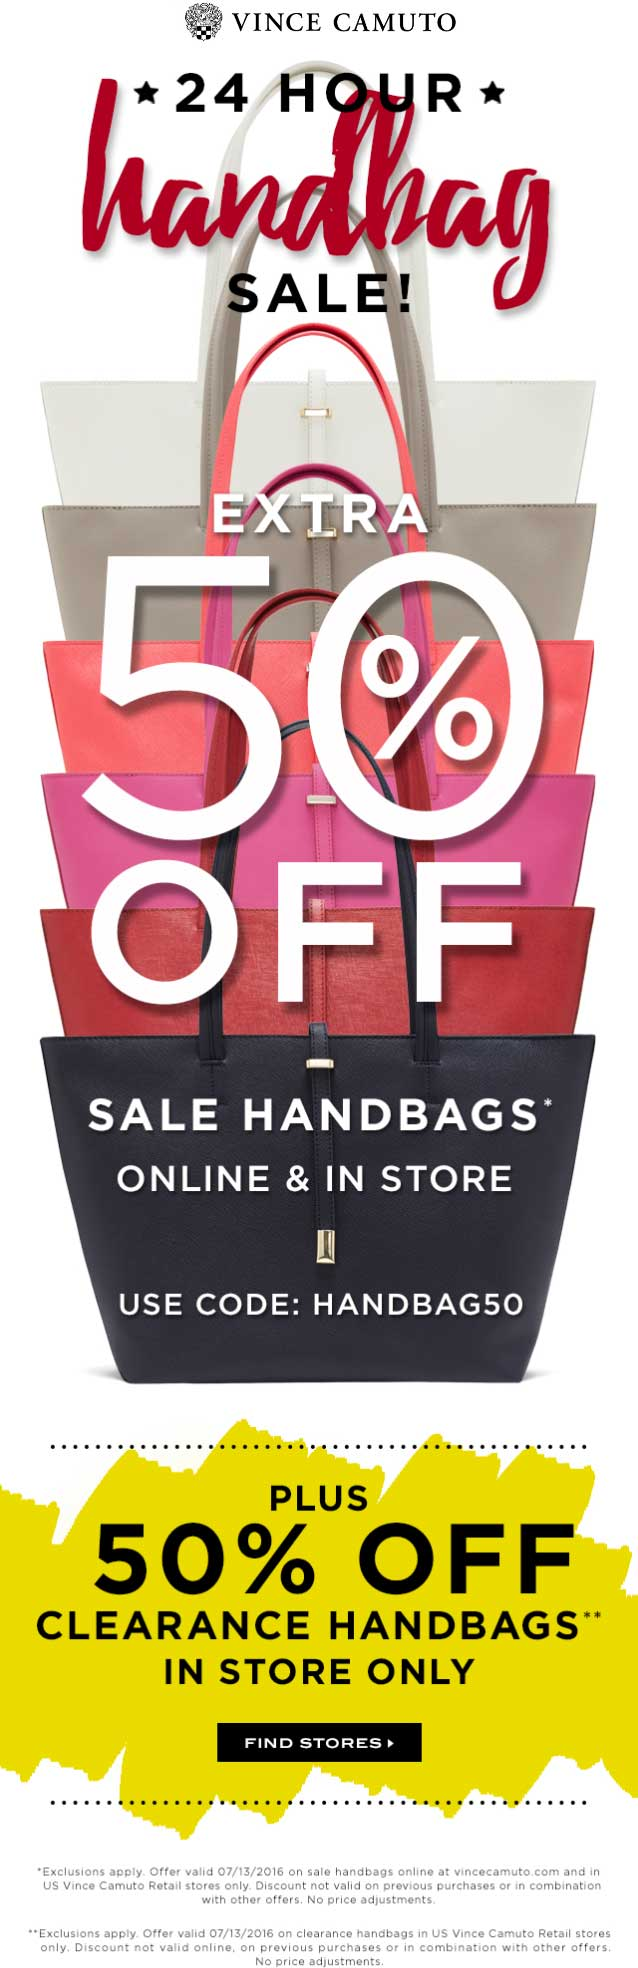 Vince Camuto Coupon April 2017 Extra 50% off sale handbags today at Vince Camuto, or online via promo code HANDBAG50